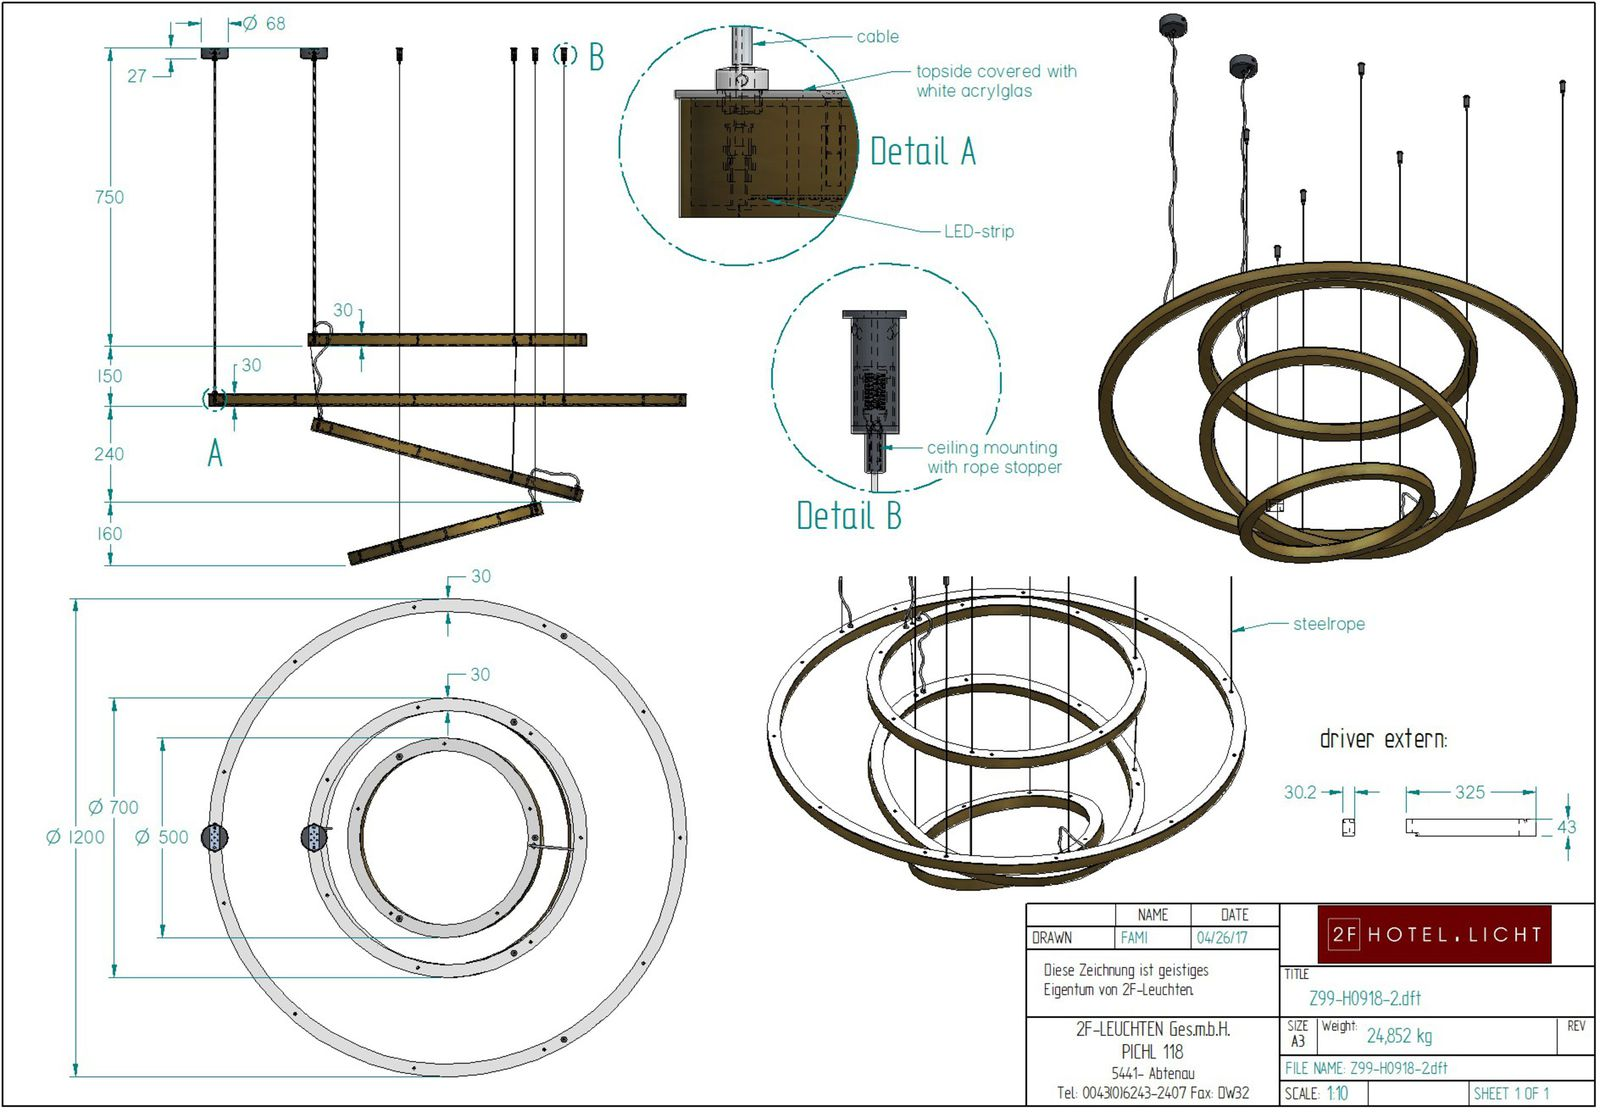 pendant, rings L:Ø1200, H:1300 Oberfläche Metall:Bronze / MB2 as sample, Fassung: LED-Strip,  Leuchtmittel: LED-Strip 113W/24V inkl. Driver,  Schalter: dali or phasecut dimmable? costs? Kabelfarbe: transparent